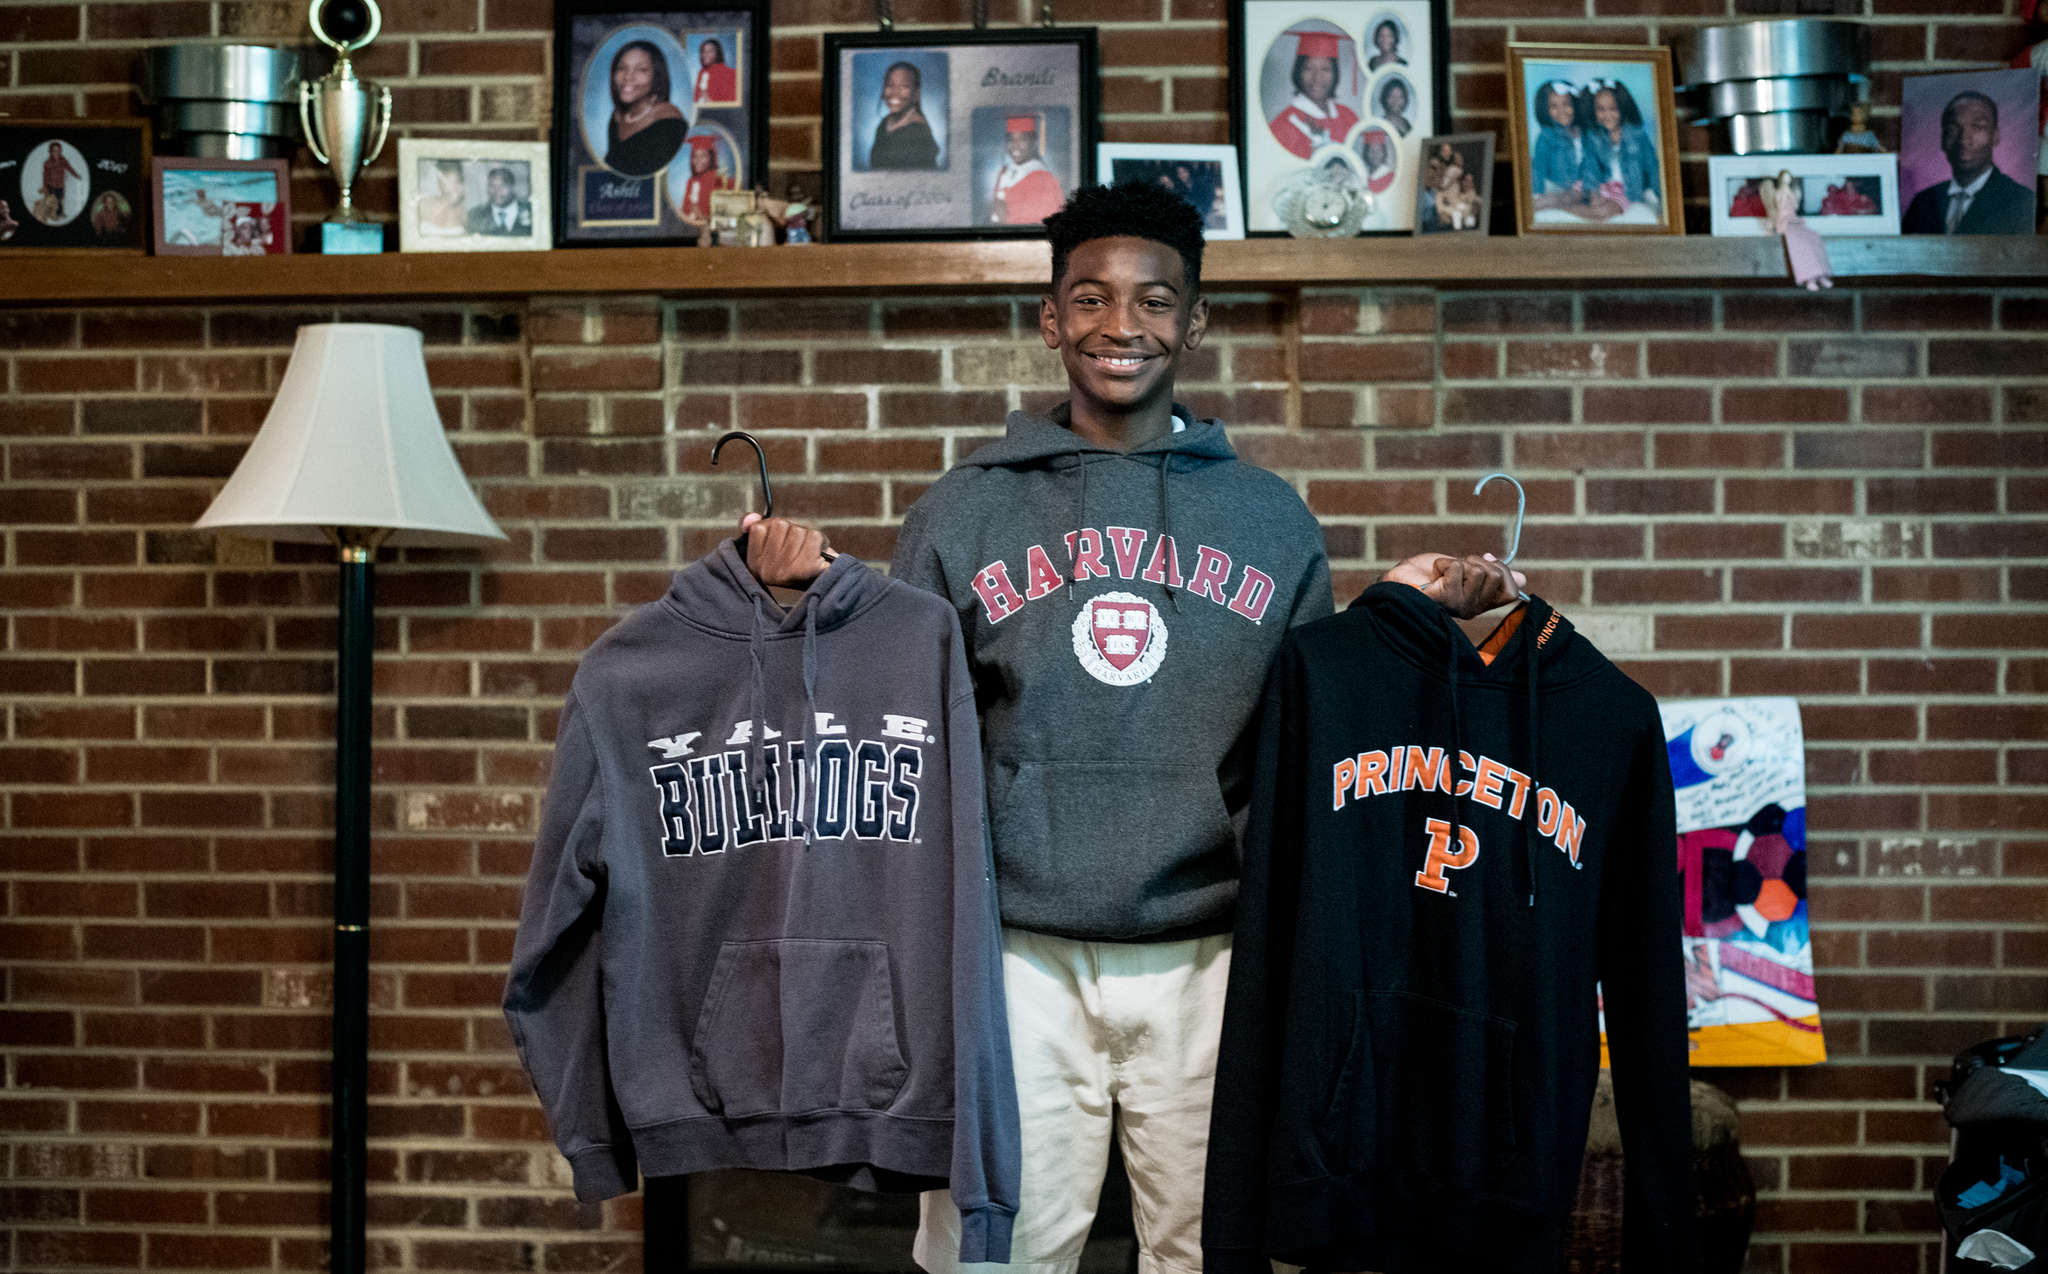 Calvin R. Bell III wears a Harvard sweatshirt while holding others from Yale and Princeton. His goal is Harvard but he wants to be in the Ivy League in any case.